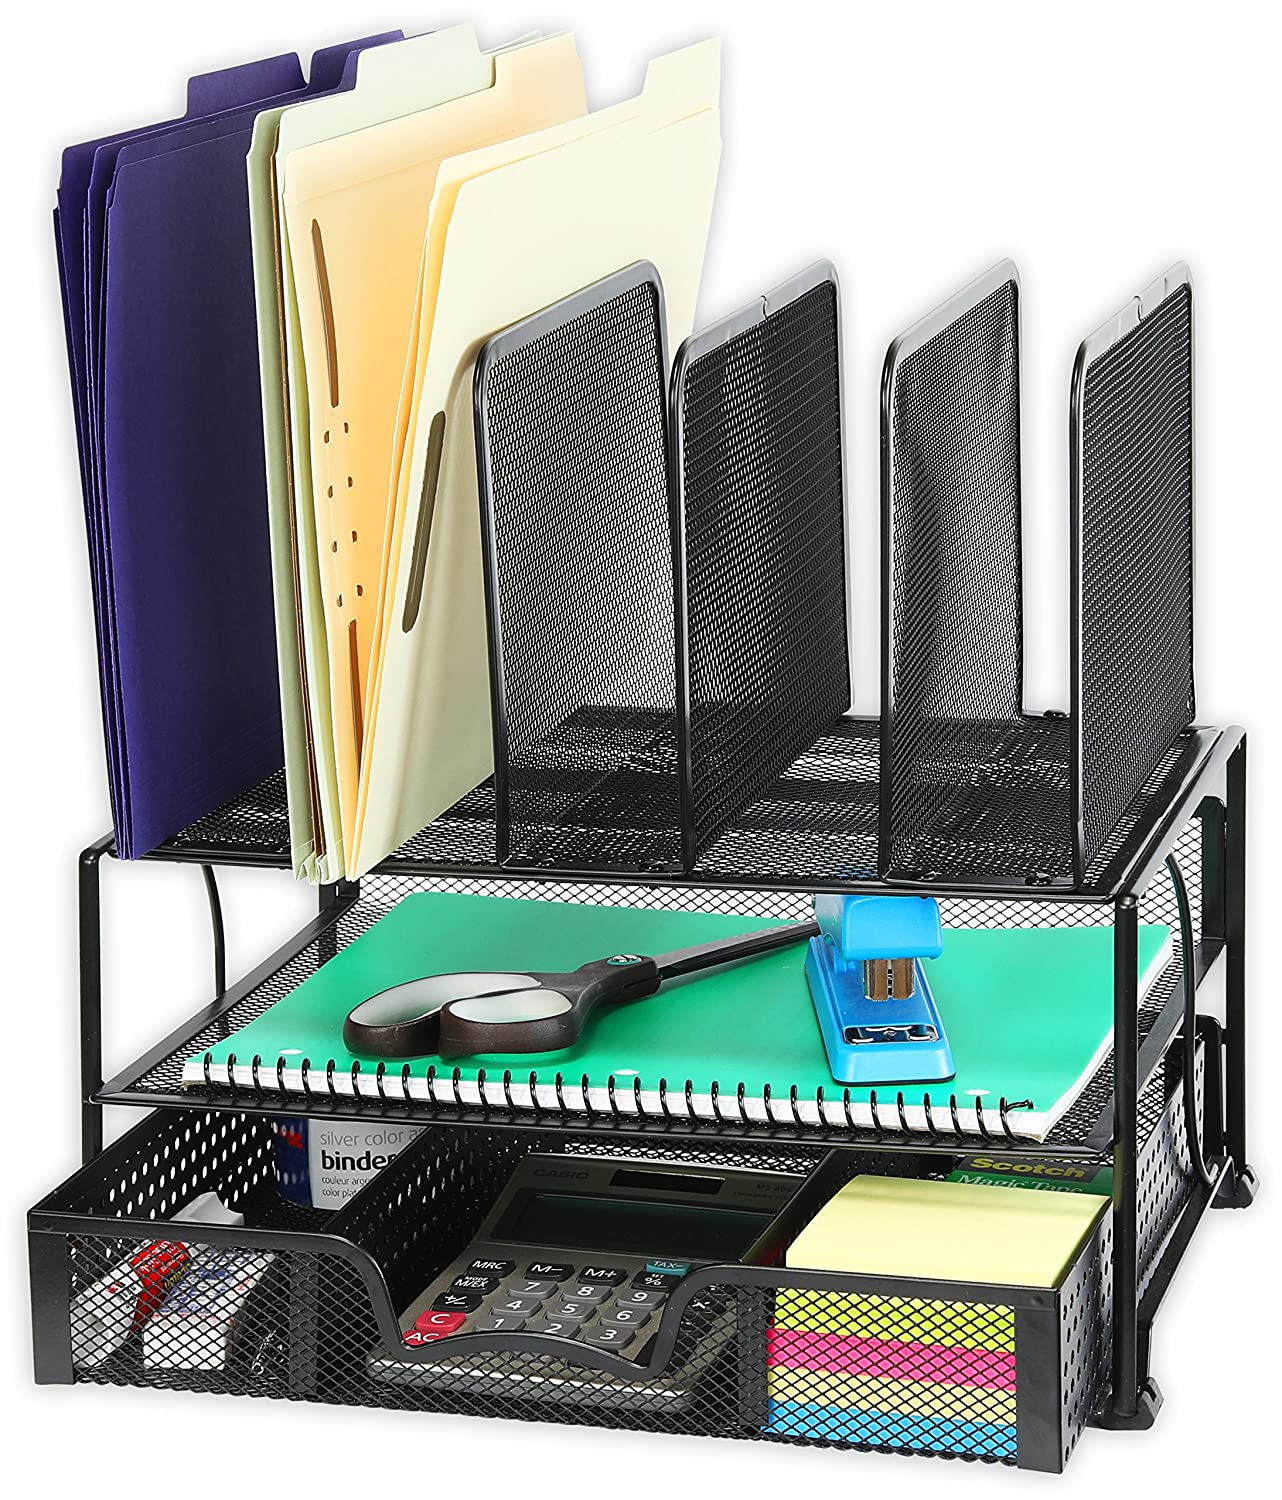 Simplehouseware Mesh Desk Organizer With Sliding Drawer Double Tray And 5 Upright Sections Black